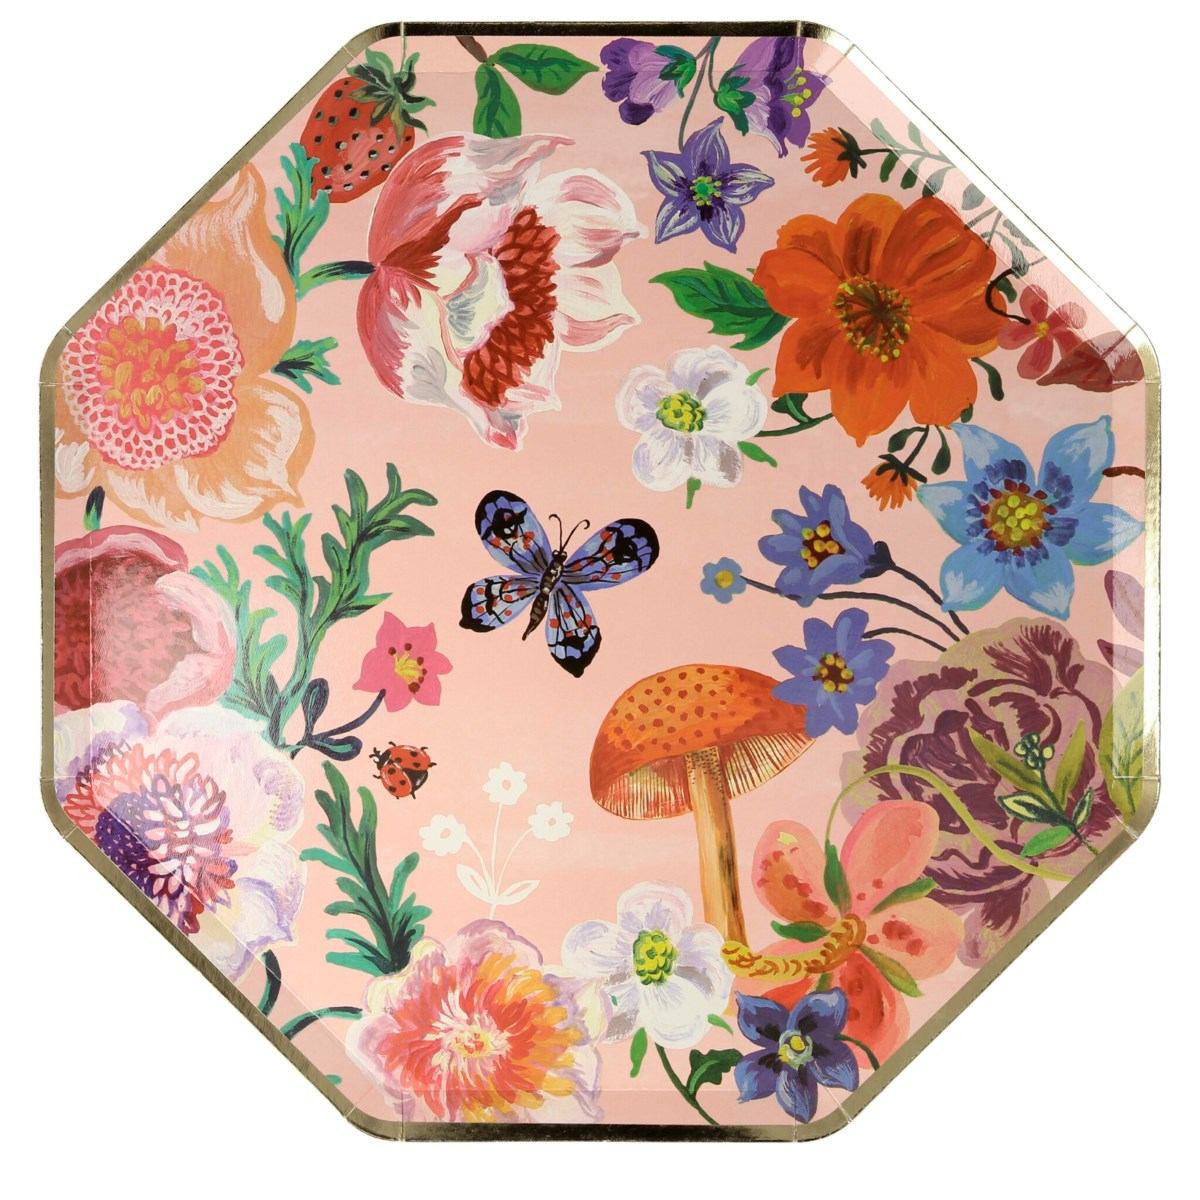 Meri Meri Nathalie Lete Flora Paper Plates Dinner | Putti Party Supplies